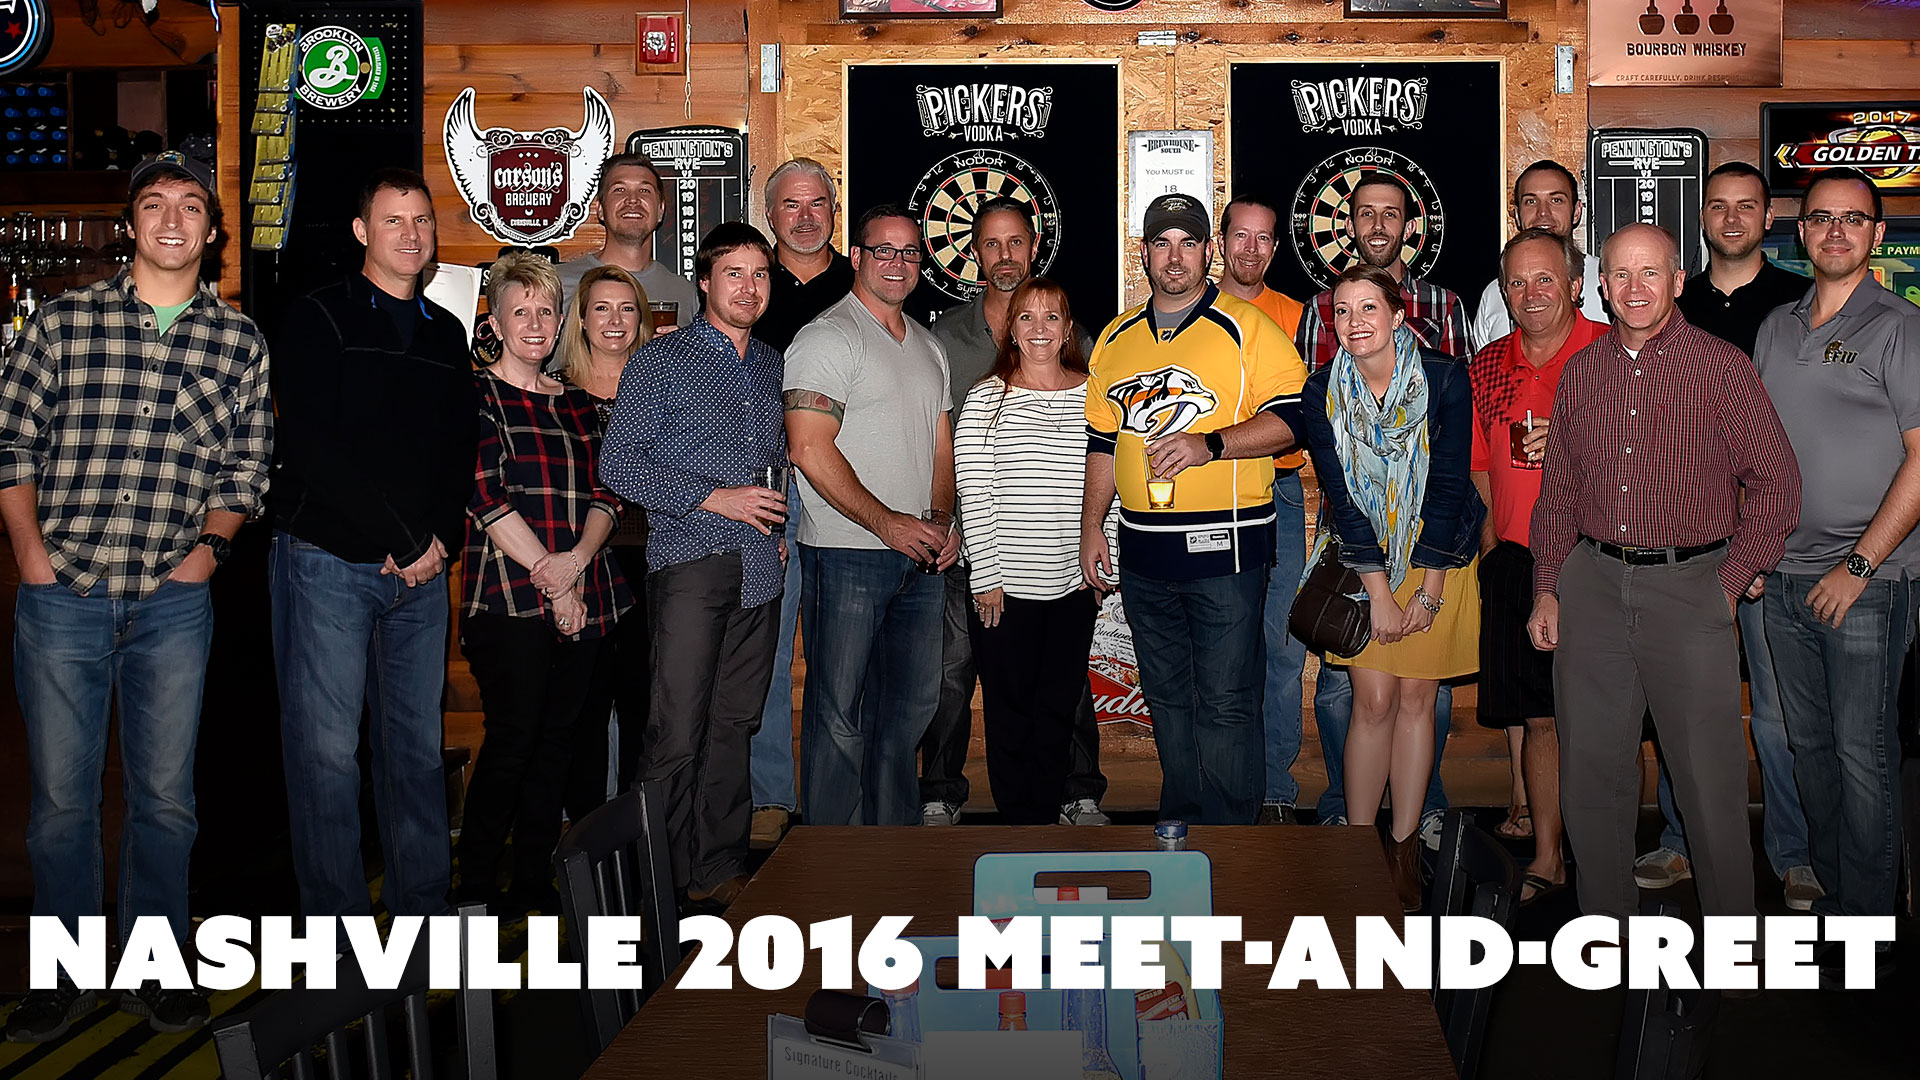 Nashville 2016 Meet-and-Greet